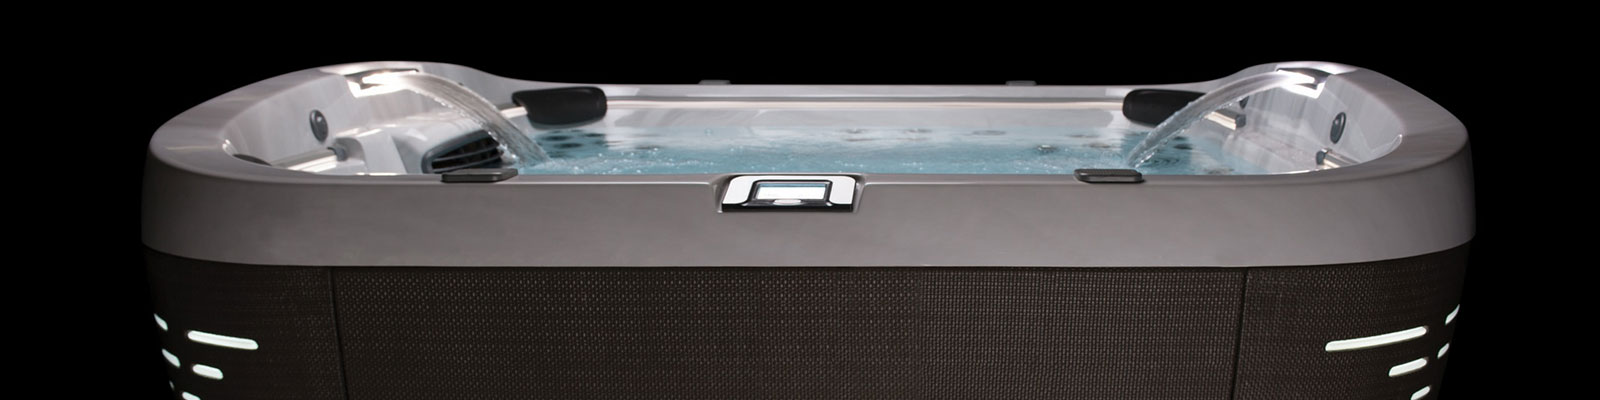 Jacuzzi Spas and Hot Tubs Dealers in Grand Rapids and Holland - Zagers Pool and Spa